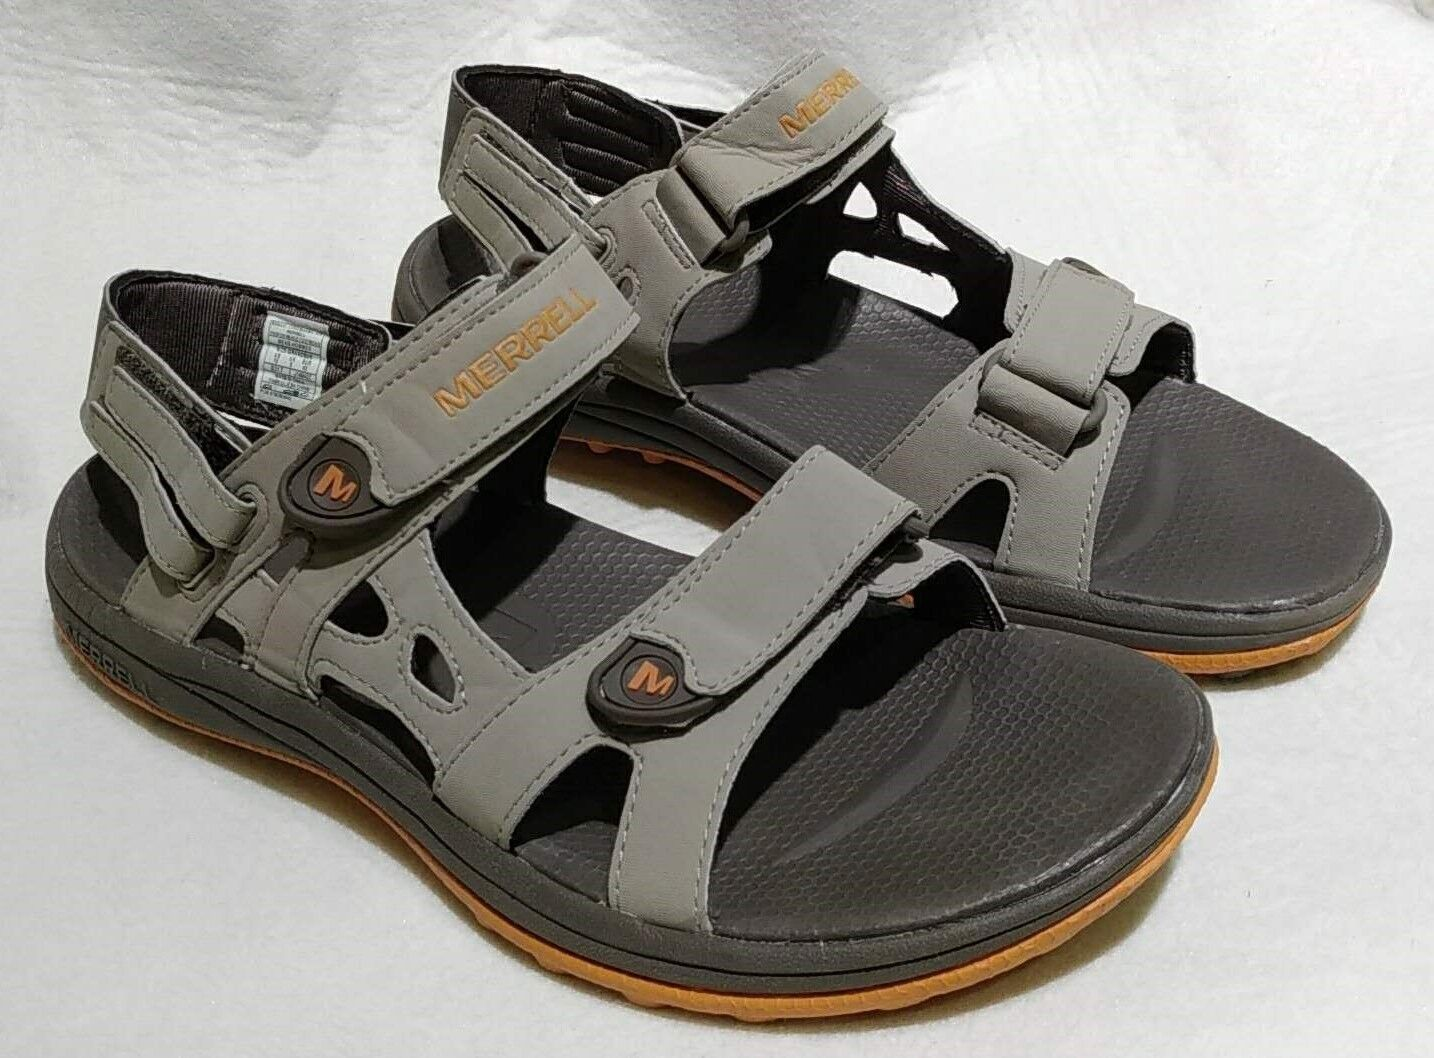 BRAND NEW MERRELL CASUAL HIKING TRAIL SPORT SANDAL MENS SHOES SIZE 10   11   12